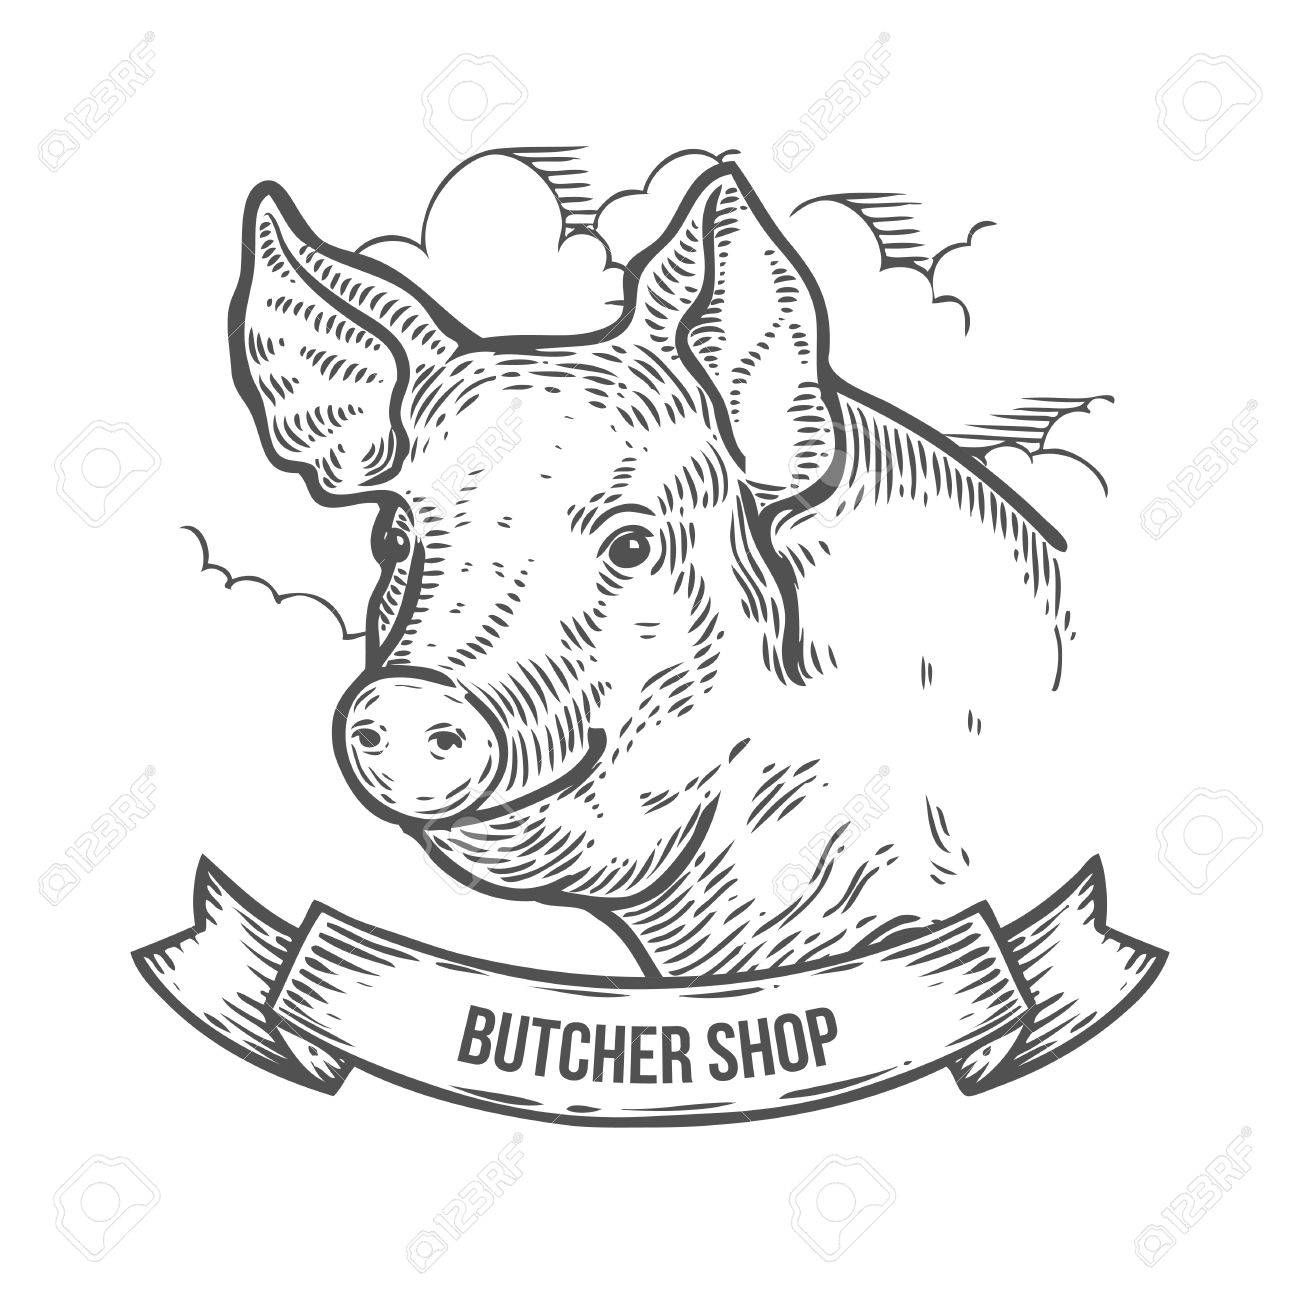 1300x1300 Pig Head Butcher Shop. Hand Drawn Sketch In A Graphic Style